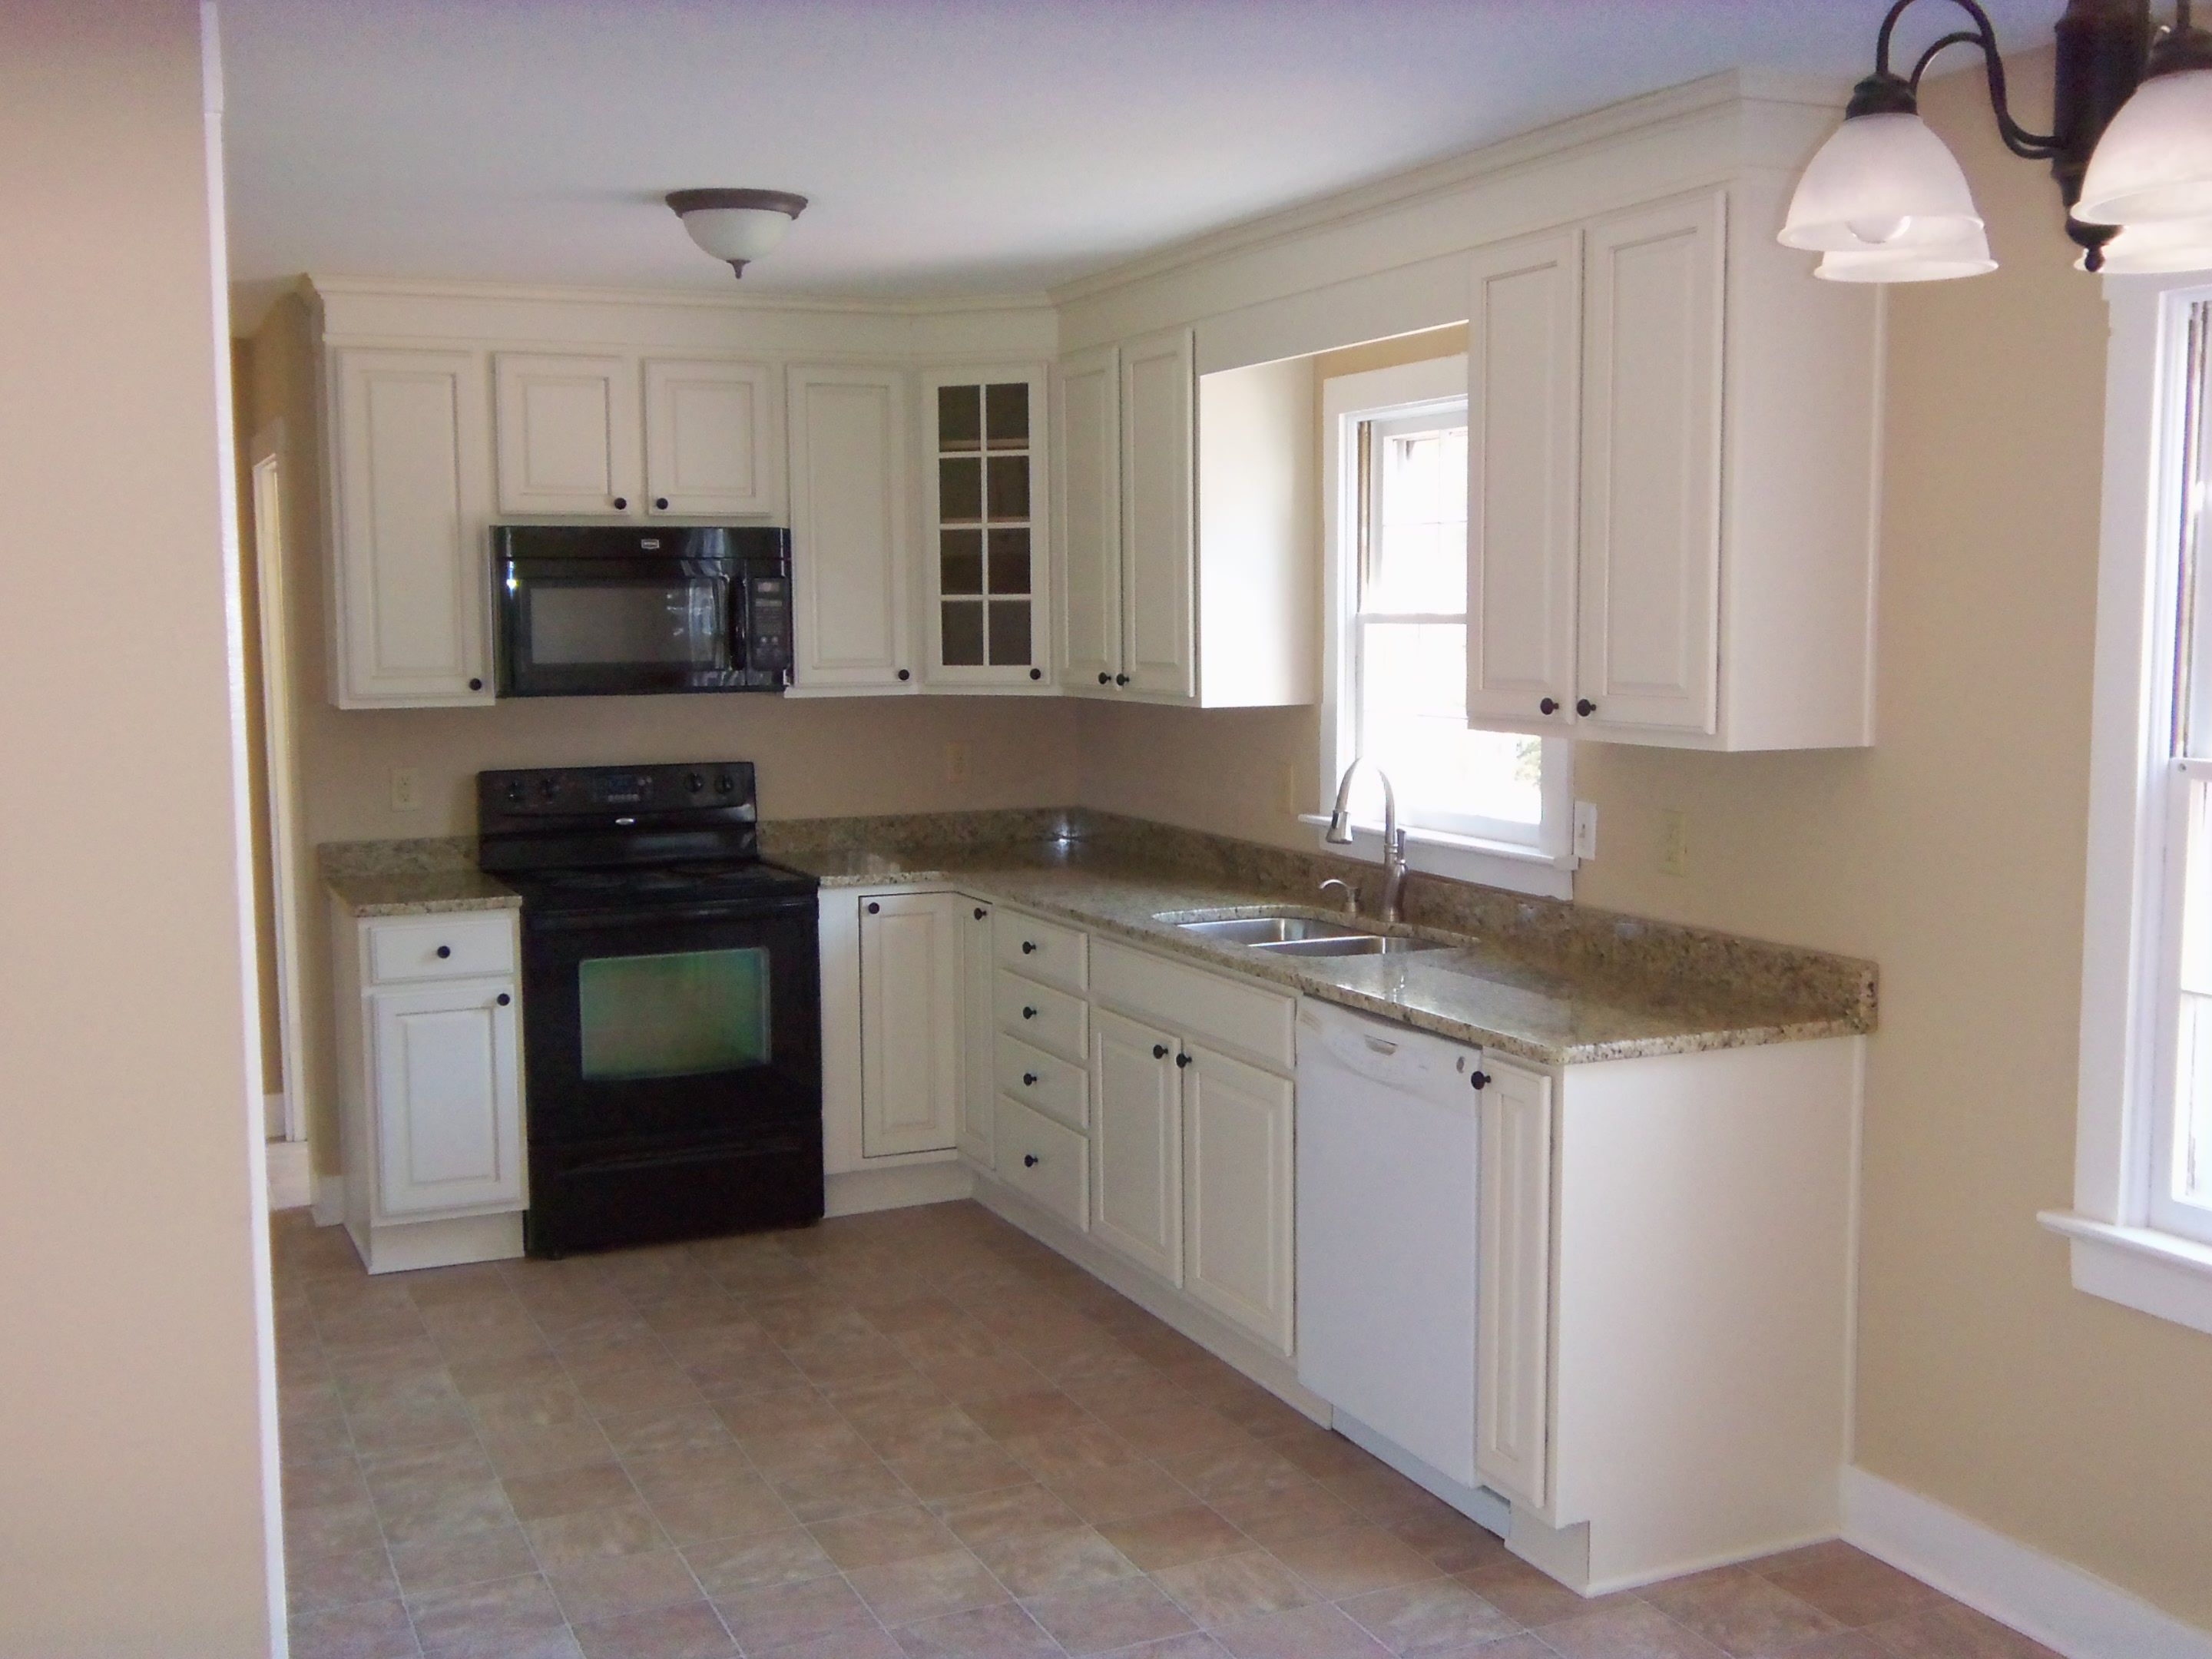 Simple Kitchen Remodel Very Small L Shaped Kitchen Small Updates To Total Kitchen